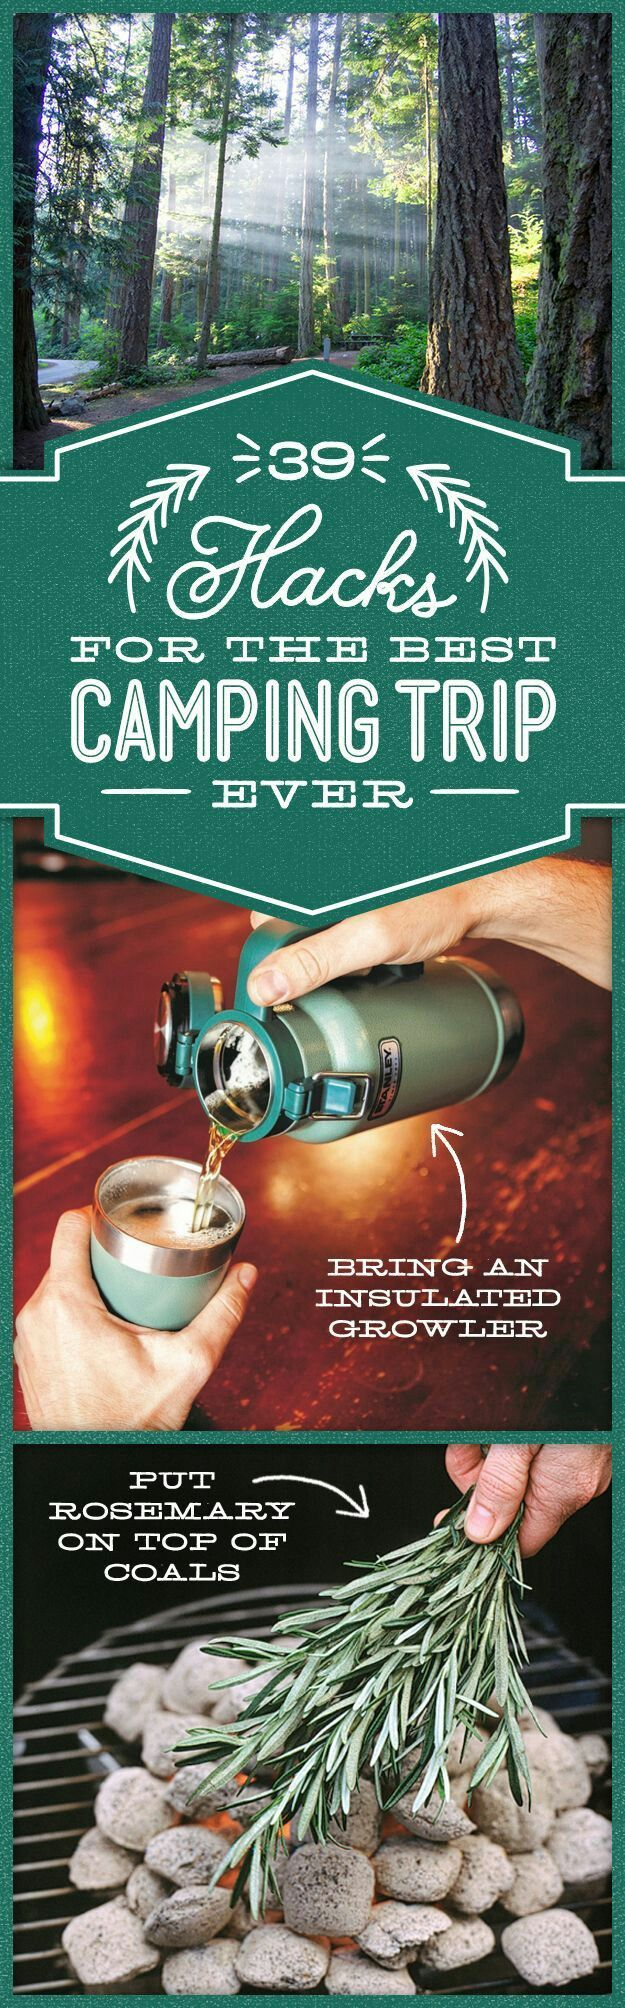 39 Brilliant Camping Hacks To Try On Your Next Outdoors Trip!!